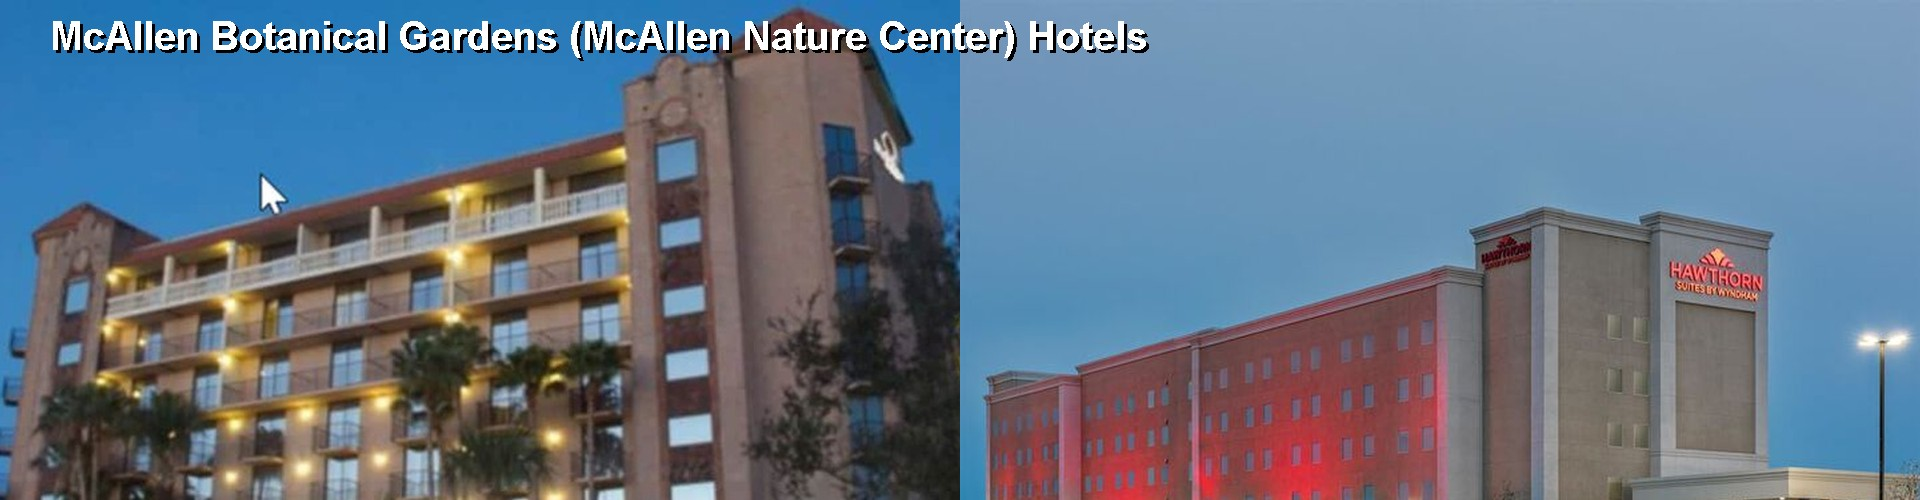 5 Best Hotels near McAllen Botanical Gardens (McAllen Nature Center)